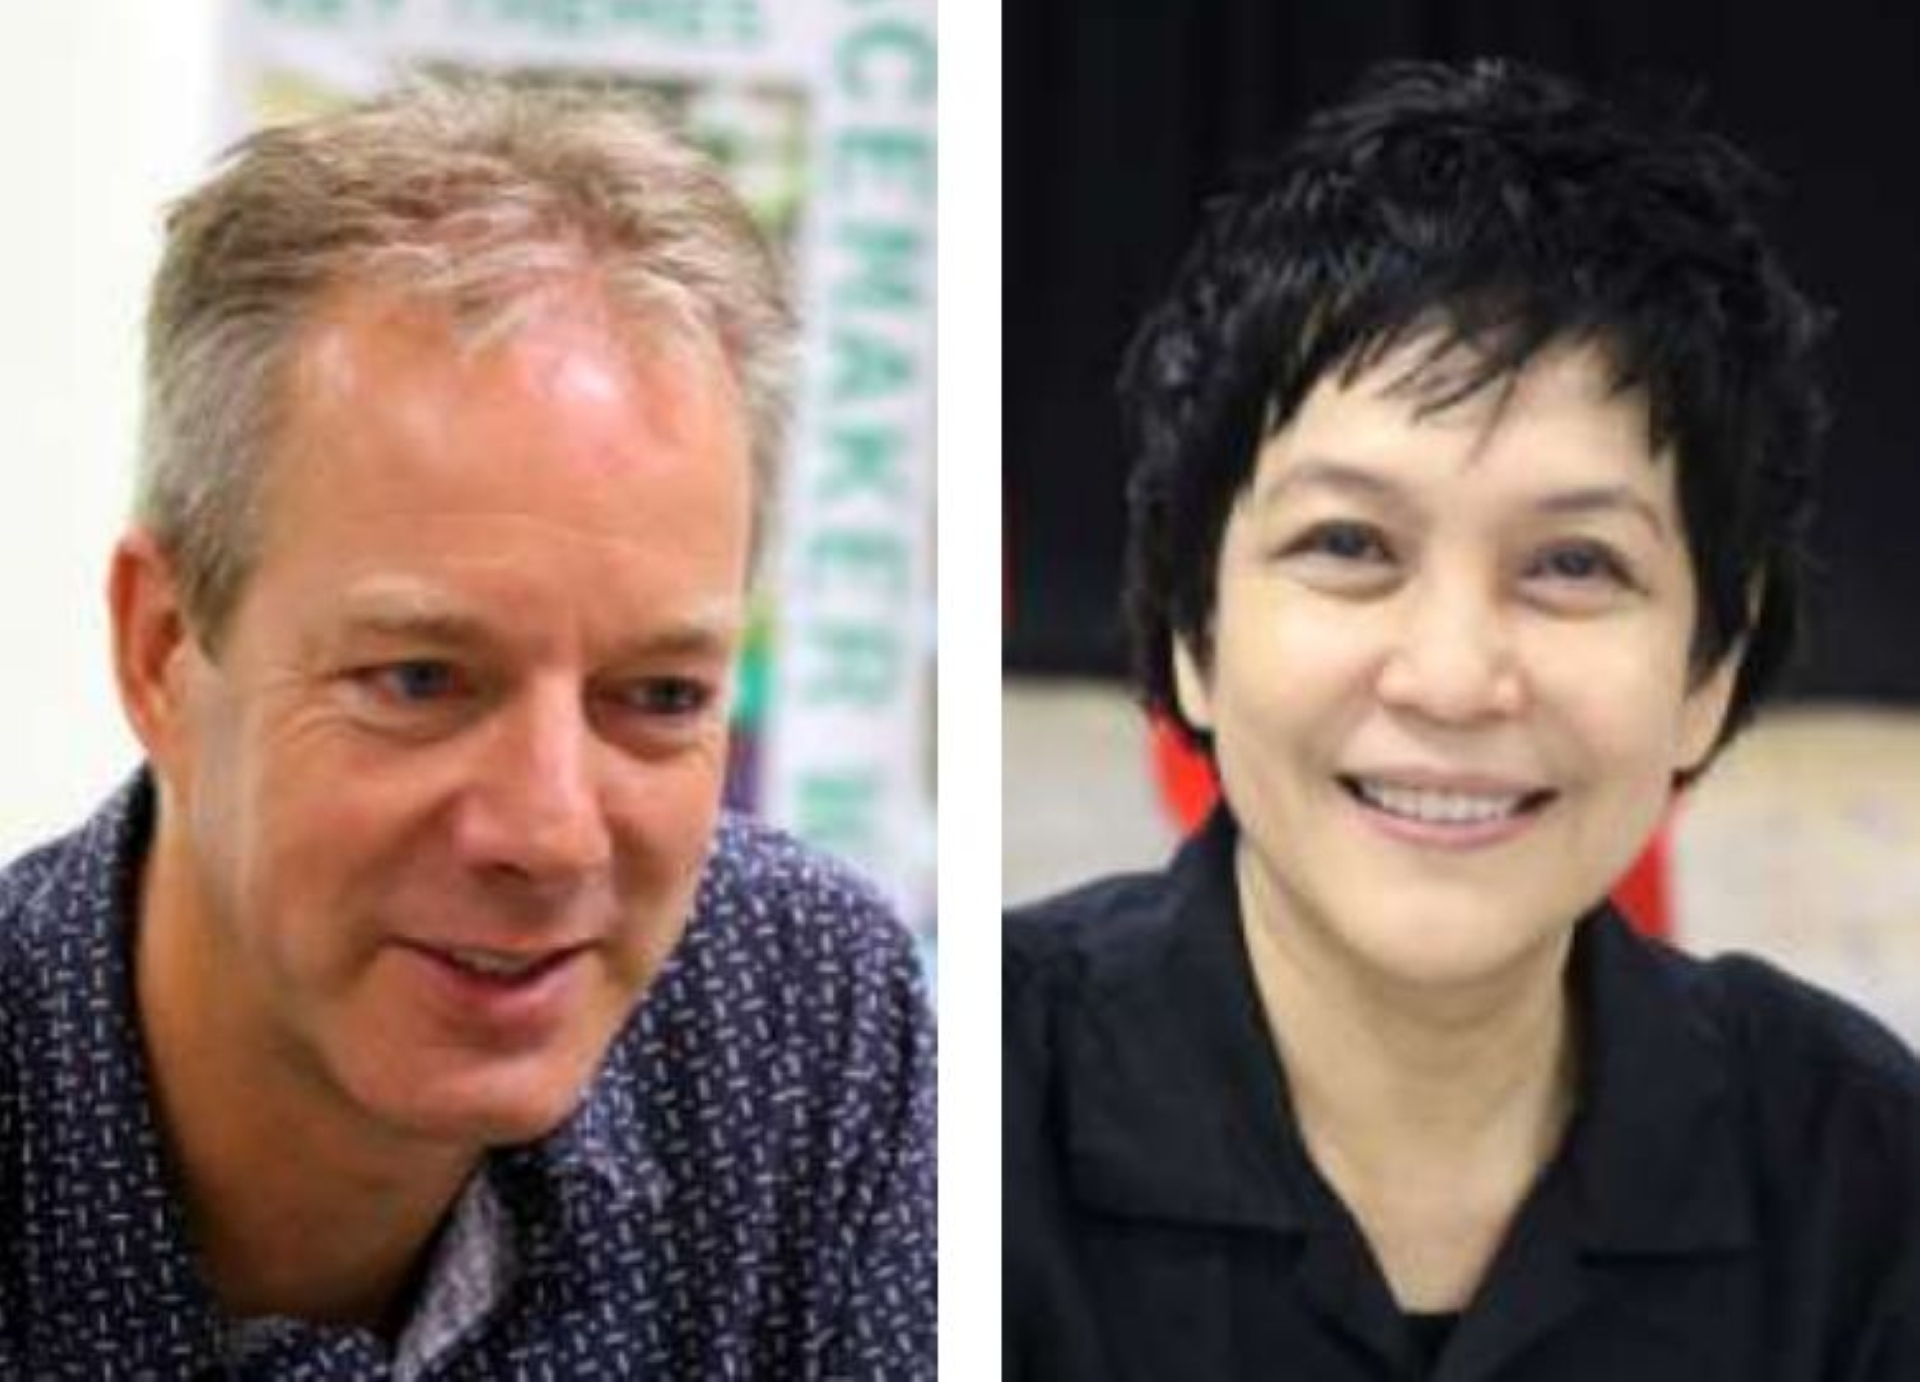 Hans Karssenberg of Stipo, will share his many years of experience in placemaking. (Right) Architect Nani Kahar of Lab DNA is one of the speakers at the inaugural Placemaker Week Asean which takes place from Nov 4 to 8.